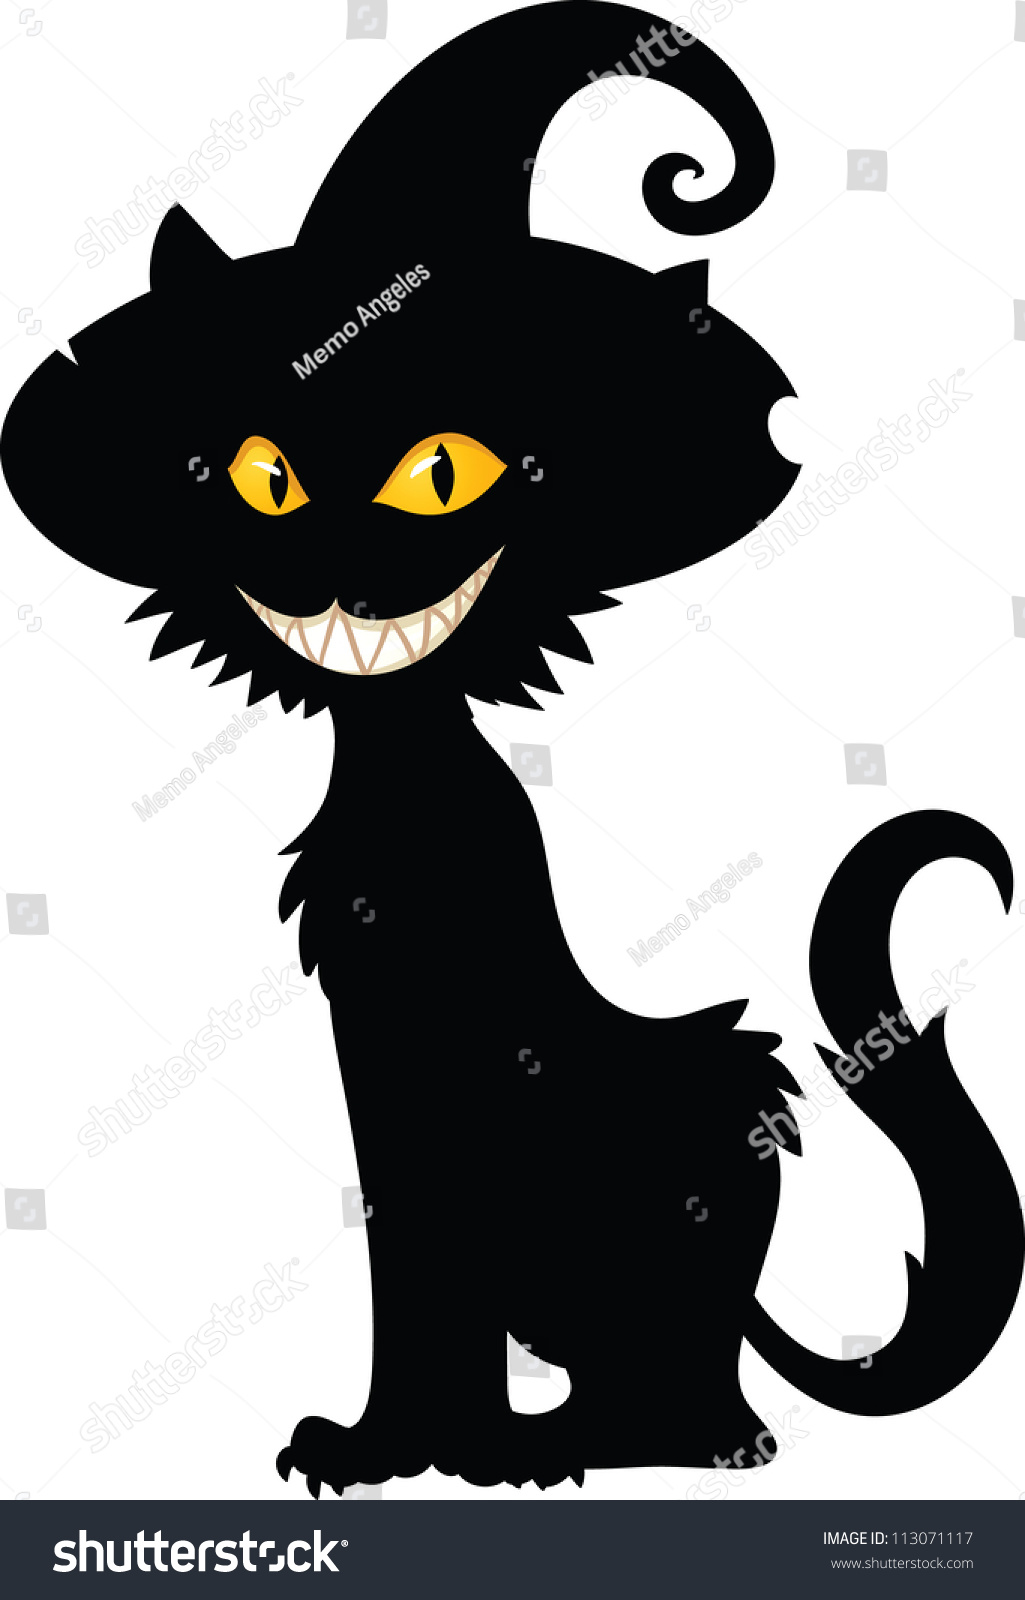 halloween witch cat silhouette vector illustration with simple gradients all in a single layer - Black Cat Silhouette Halloween